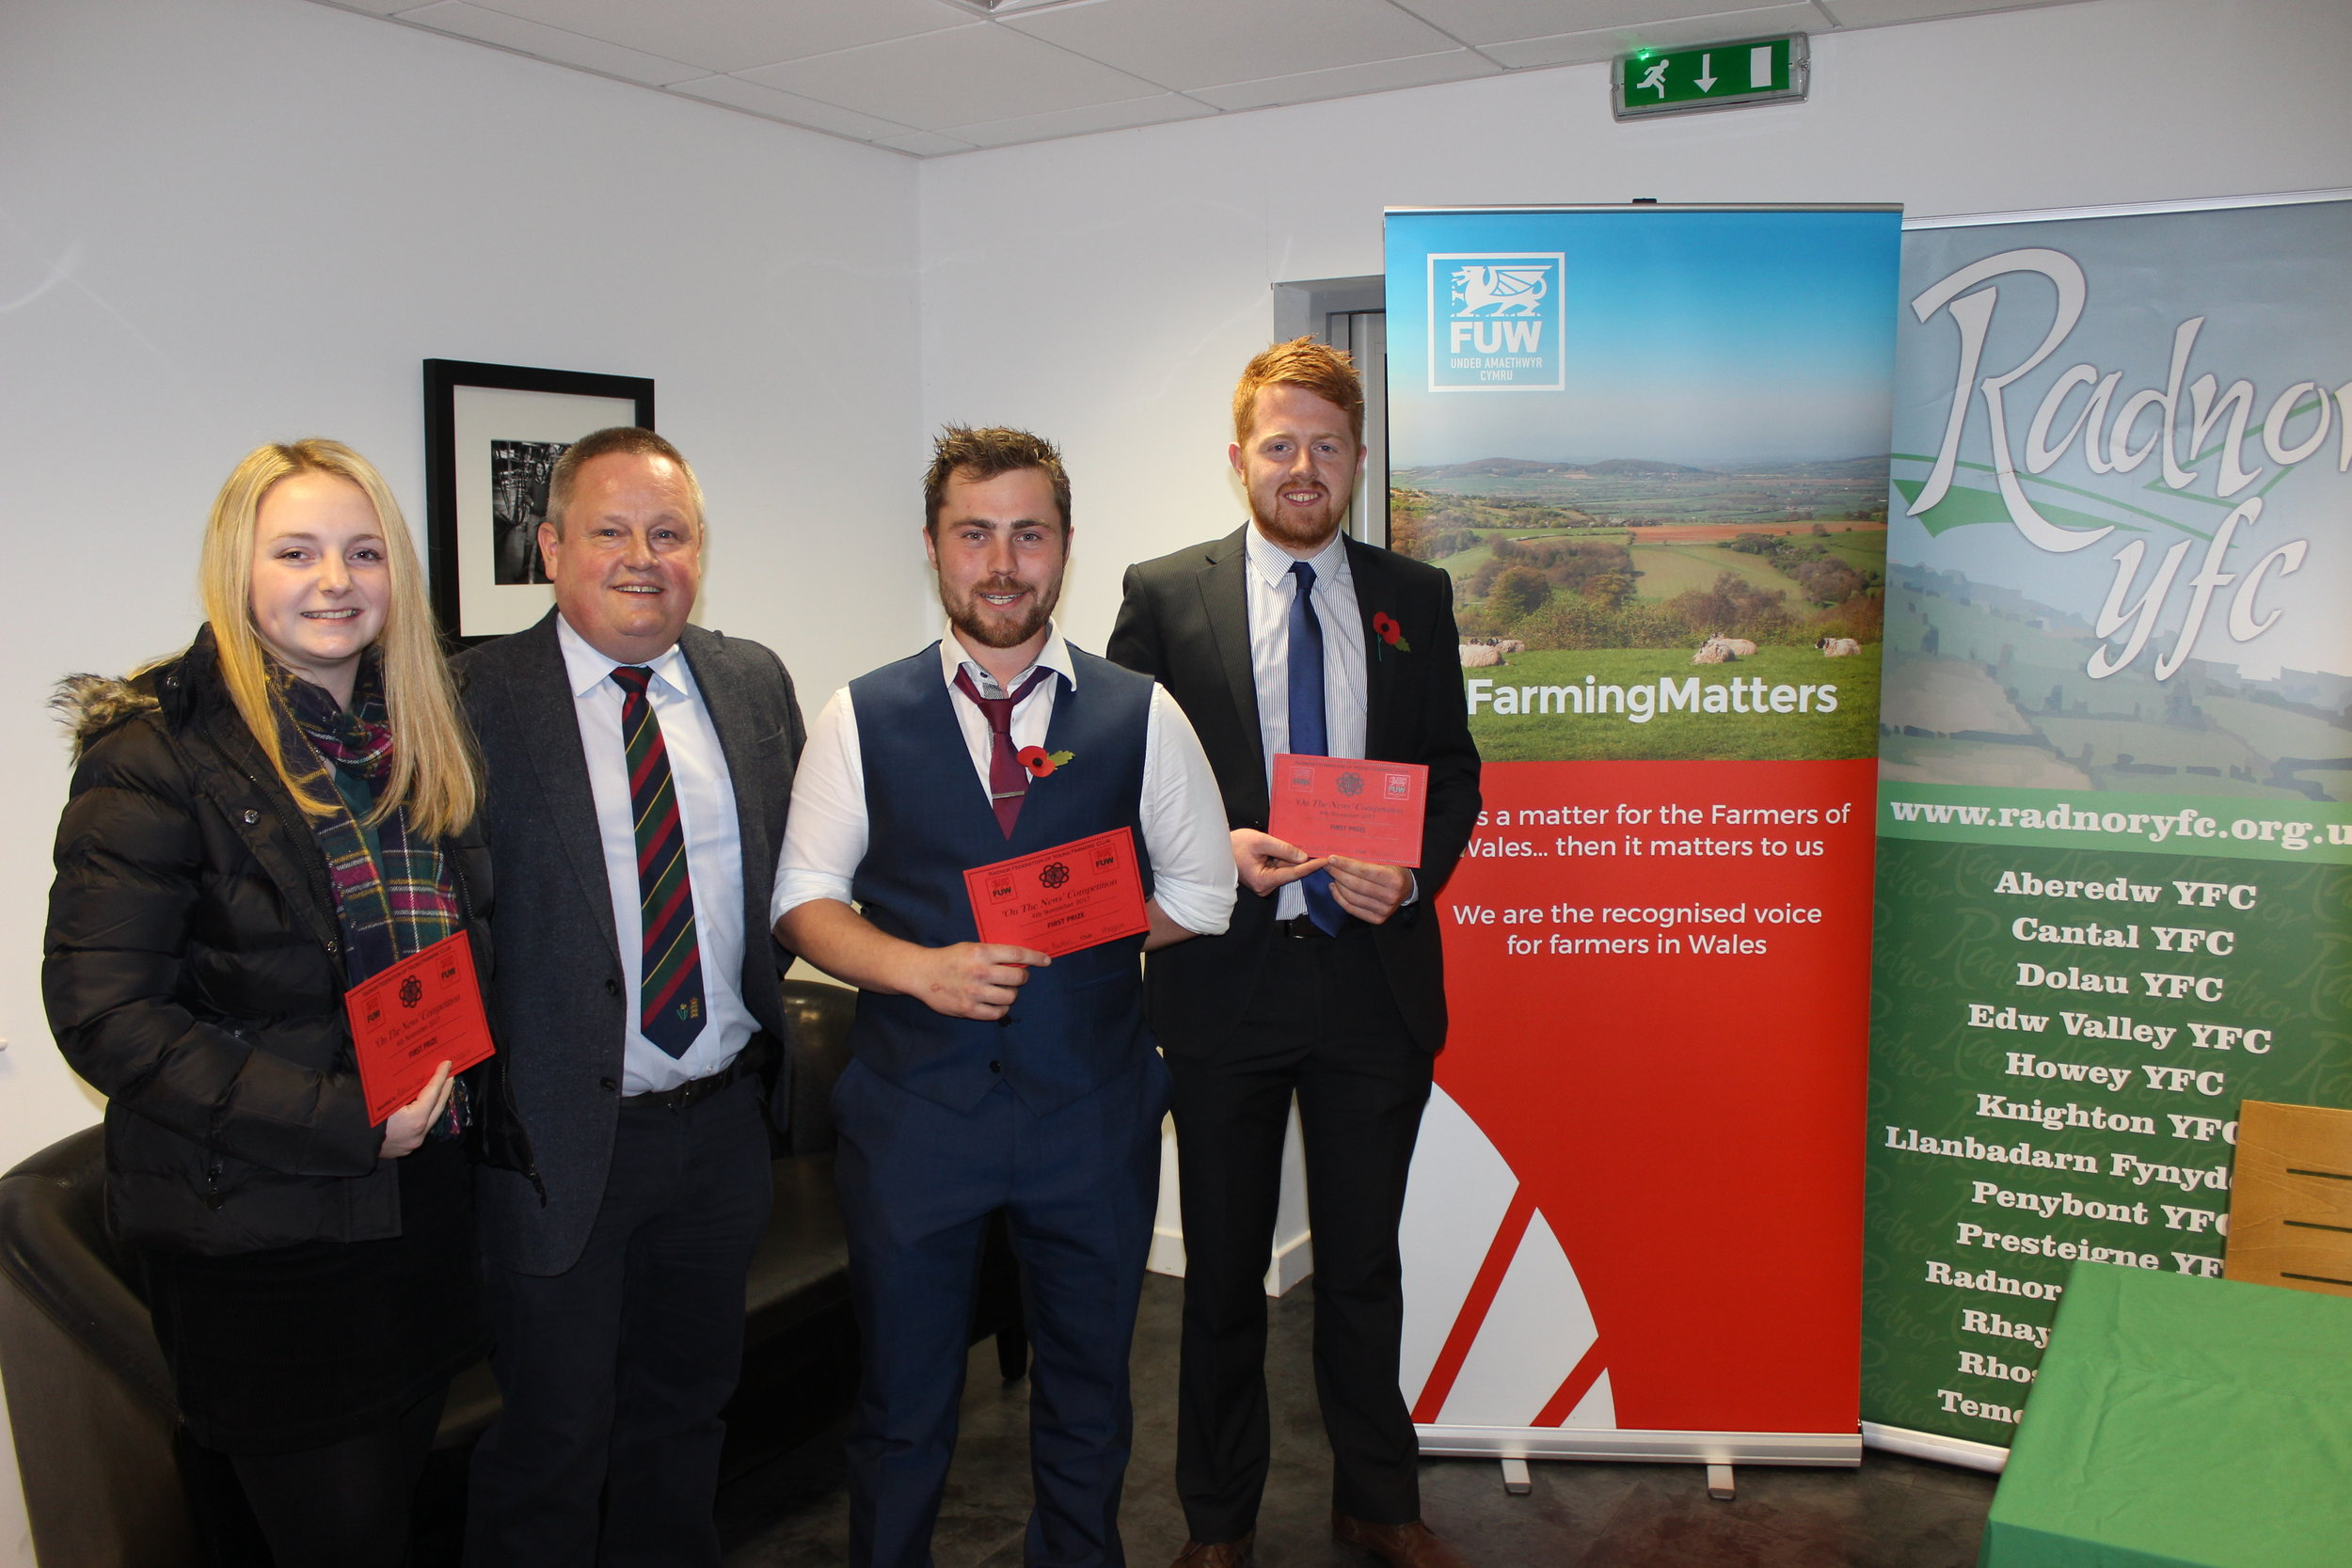 Rebecca Lloyd, James Poulton and Richard Meredith, Rhosgoch YFC with judge Trevor Owens winning the 'On The News' Competition.